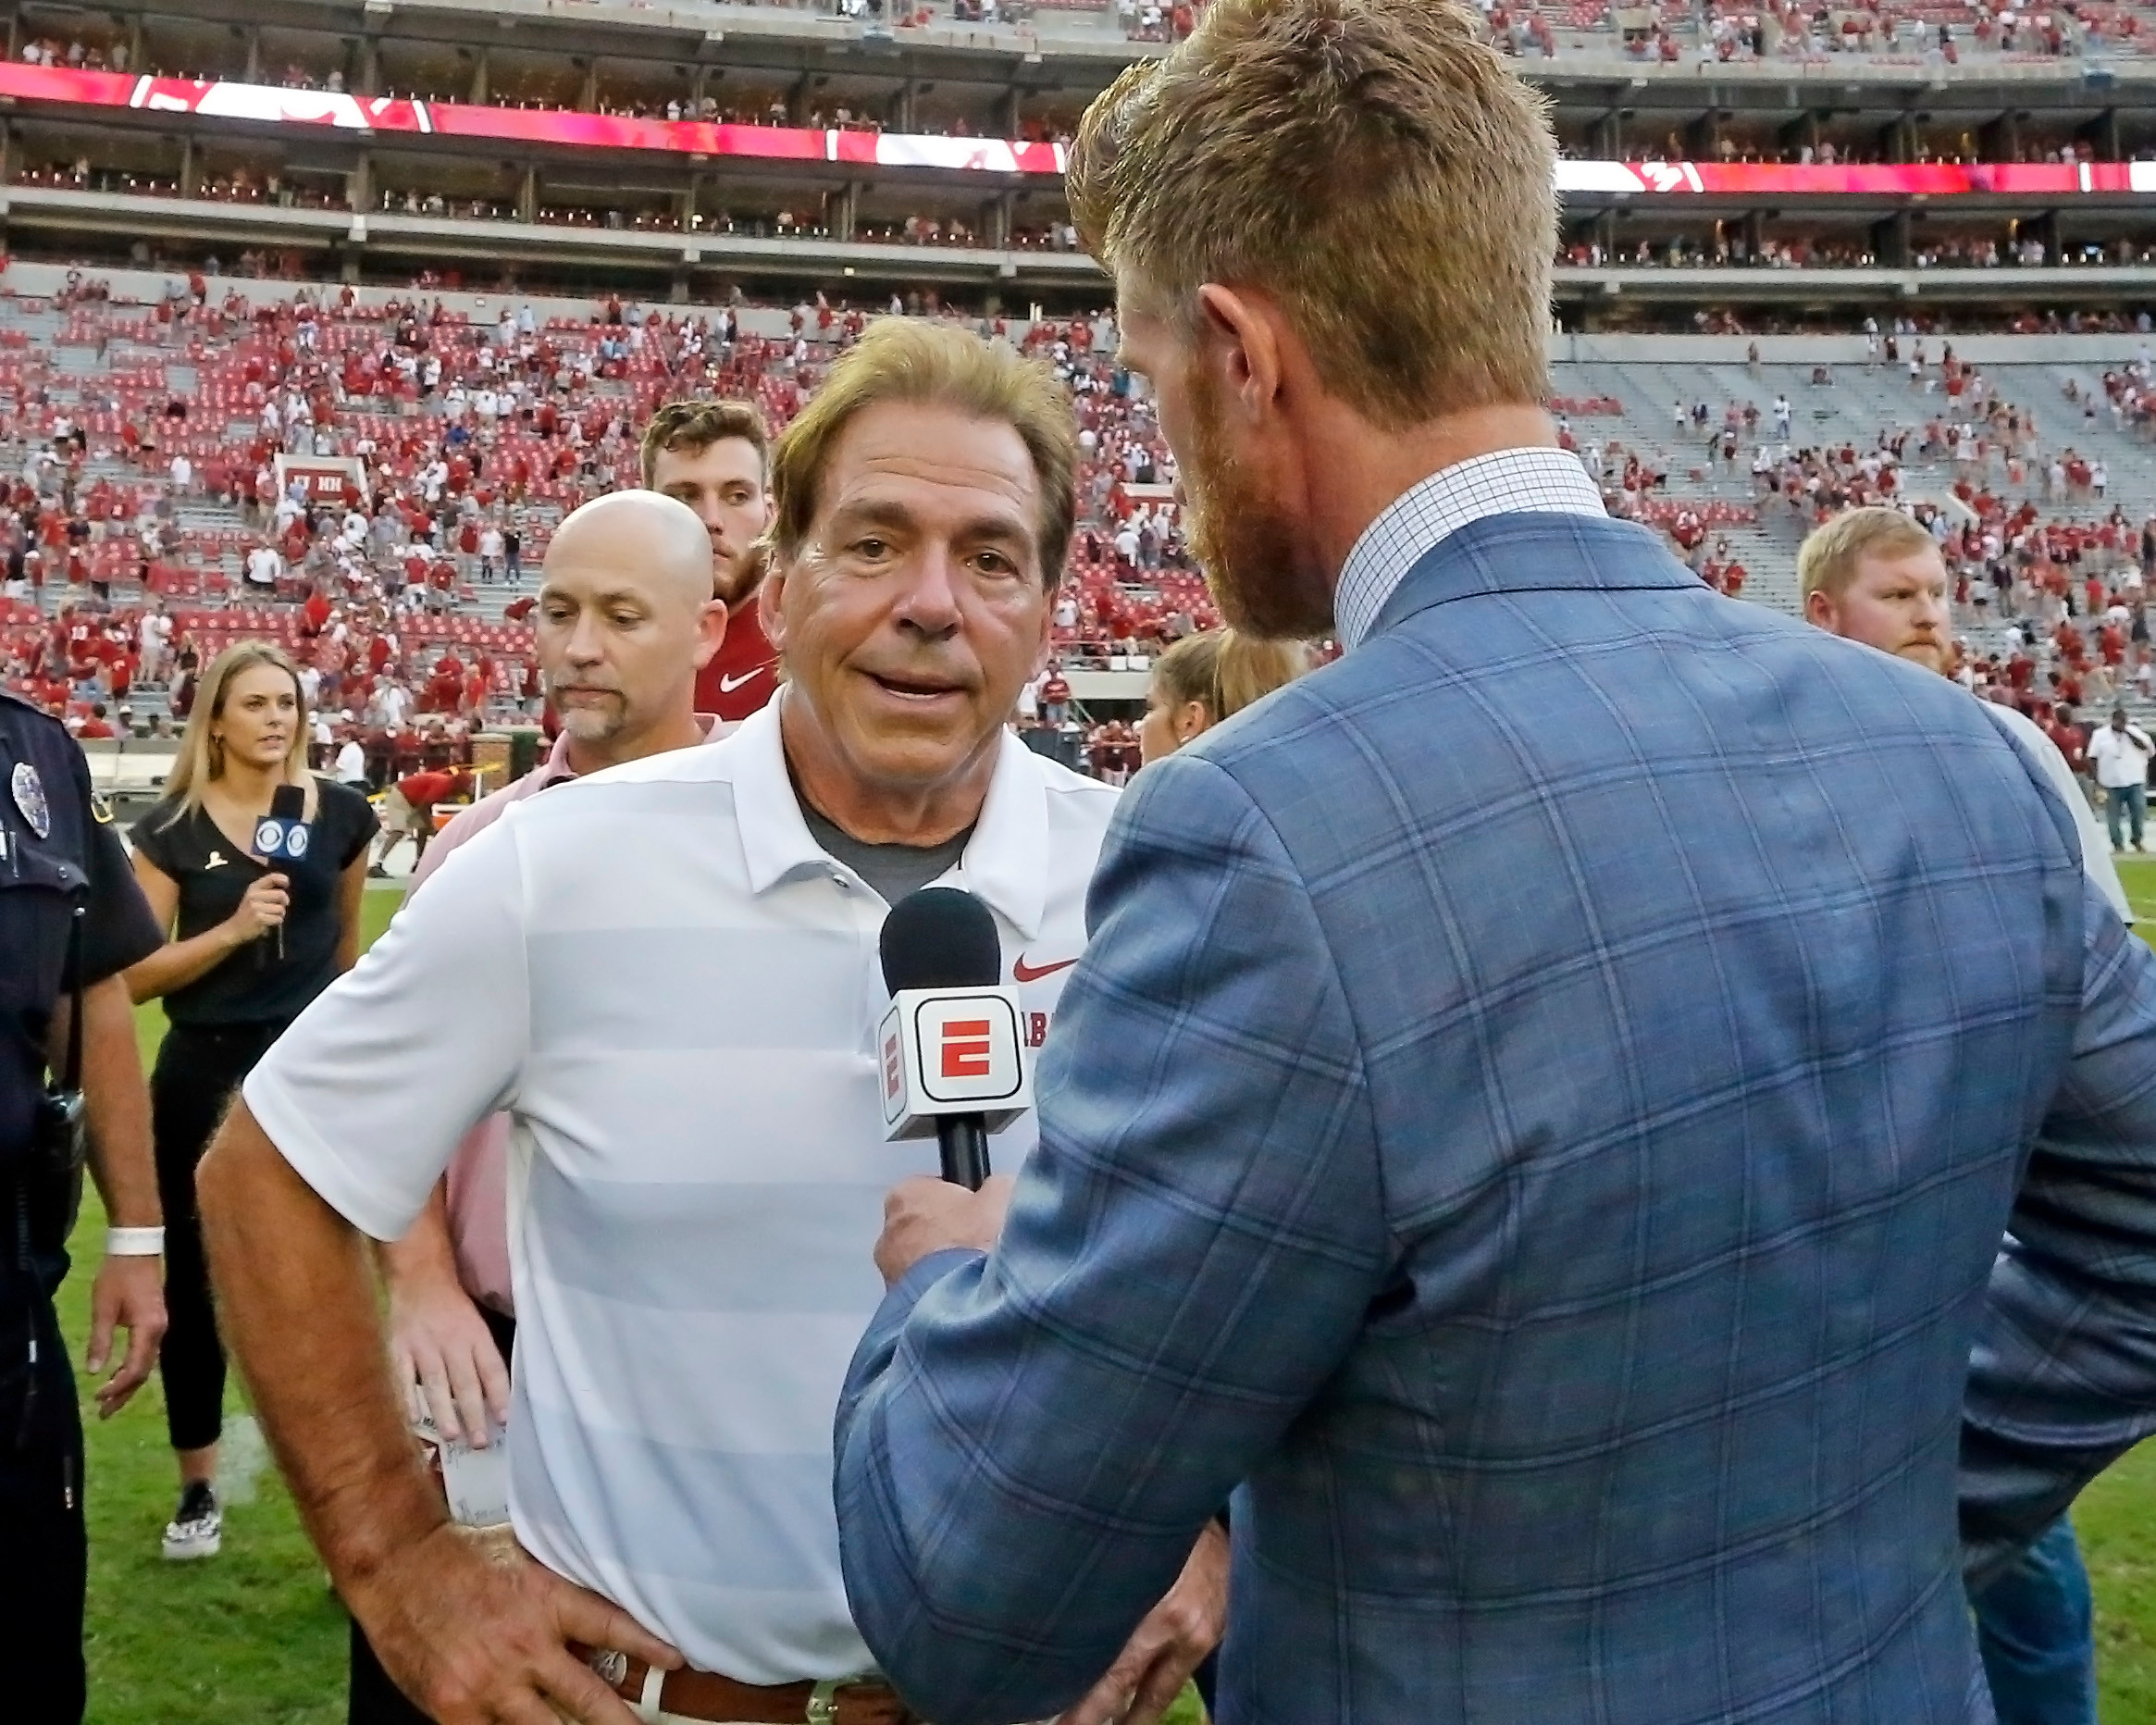 Alabama Crimson Tide head coach Nick Saban after the game with against the Texas A&M Aggies at Bryant-Denny Stadium.  Jason Clark / Daily Mountain Eagle